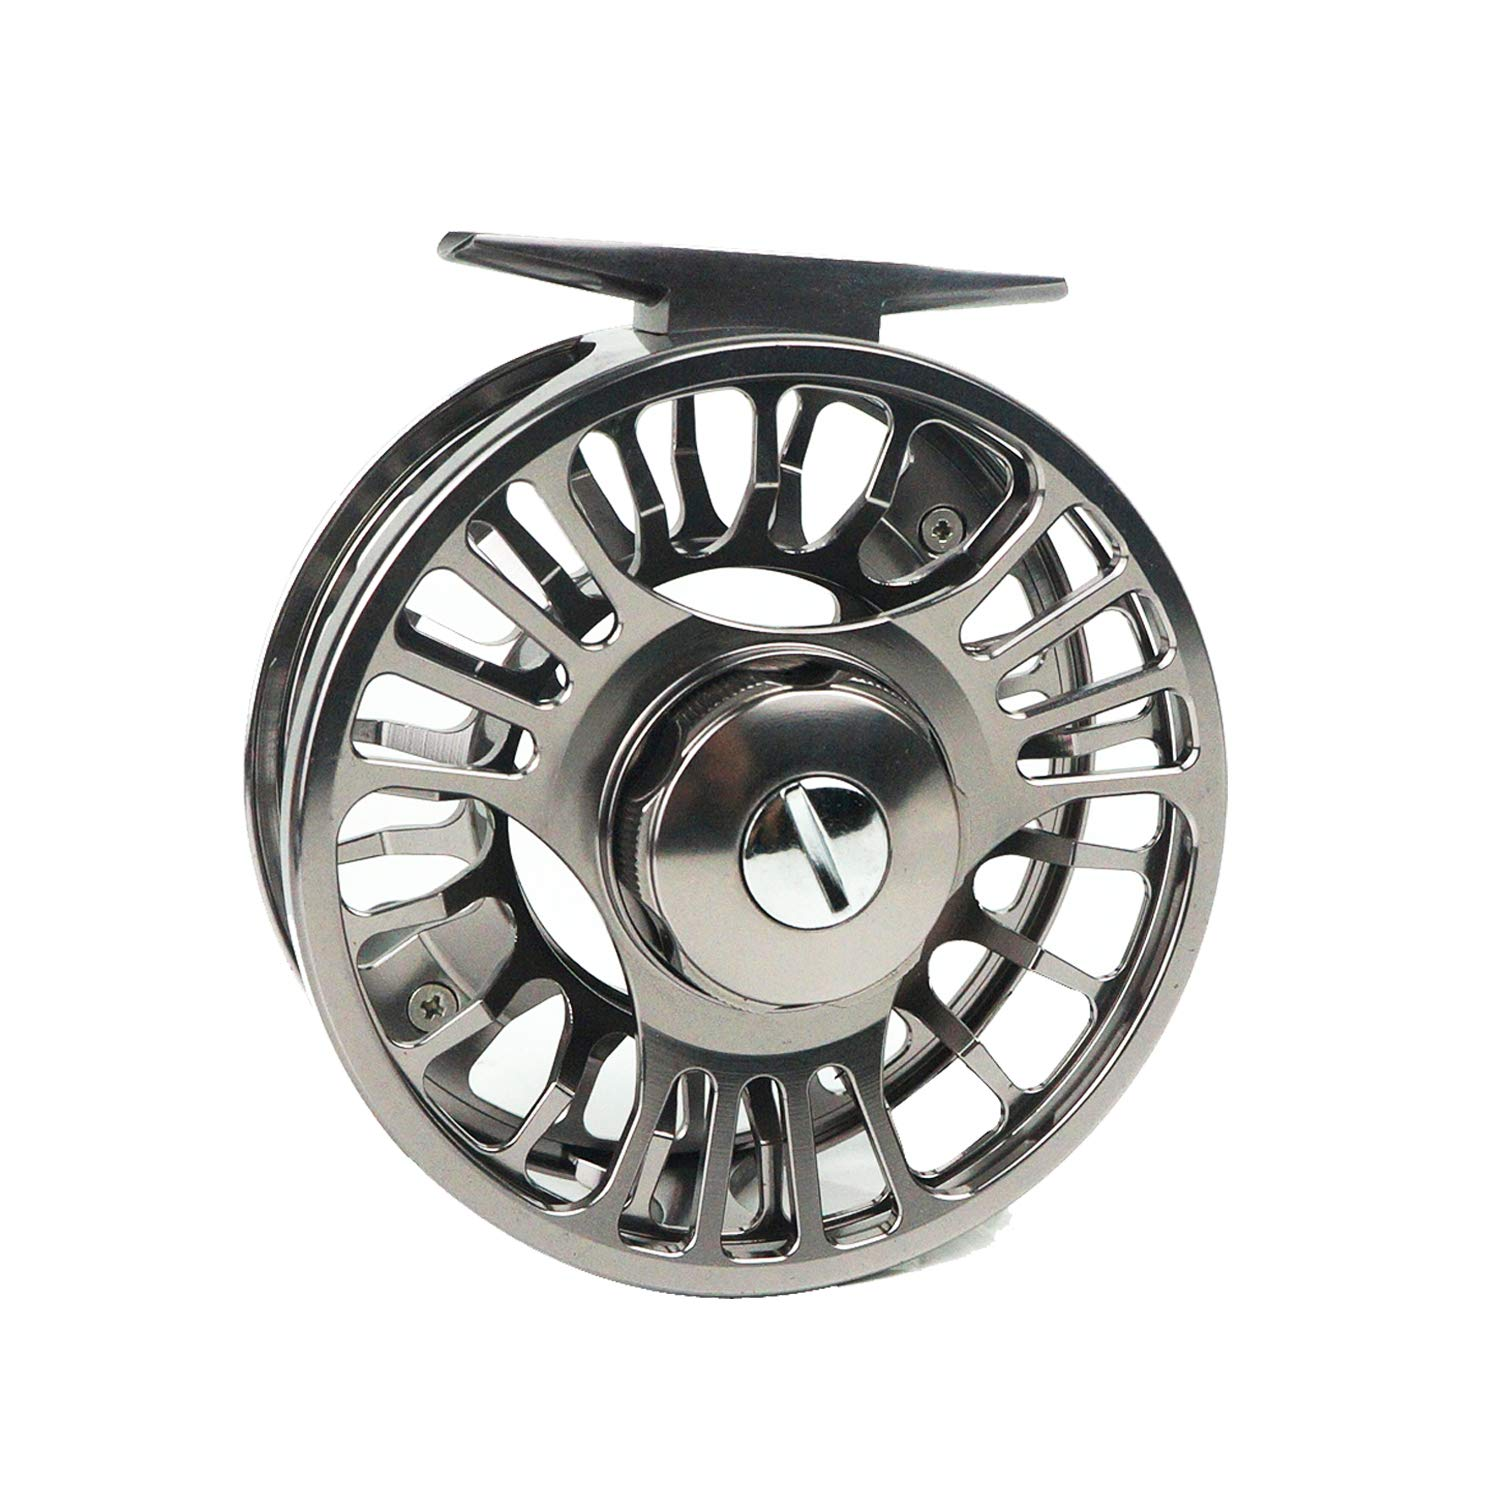 Riverruns Z Fly Fishing Reel Super Light CNC Machined Second Generation Sealed Carbon Disc Super Larger Arbor 3 5, 5 7, 7 9 Ideal Both Fresh Water Saltwater Fly Fishing